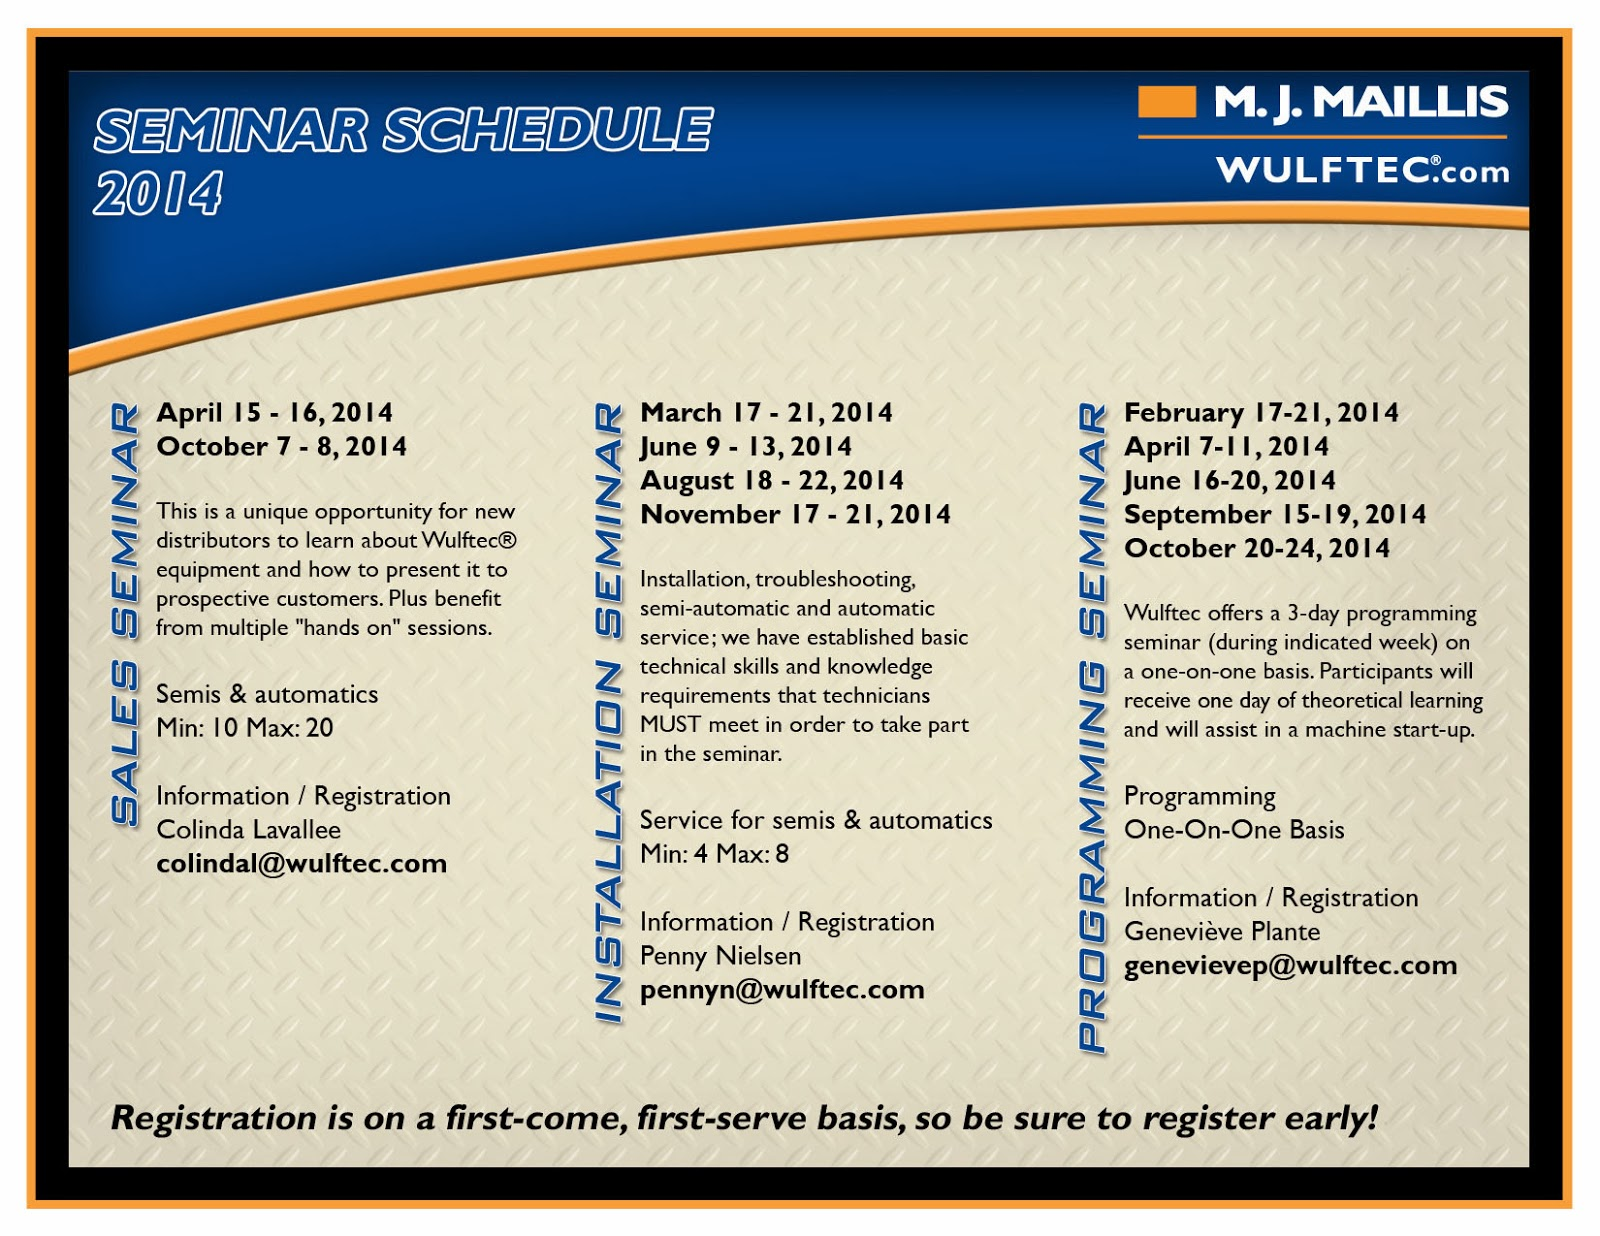 Wulftec 2014 Seminar schedule for authorized distributors